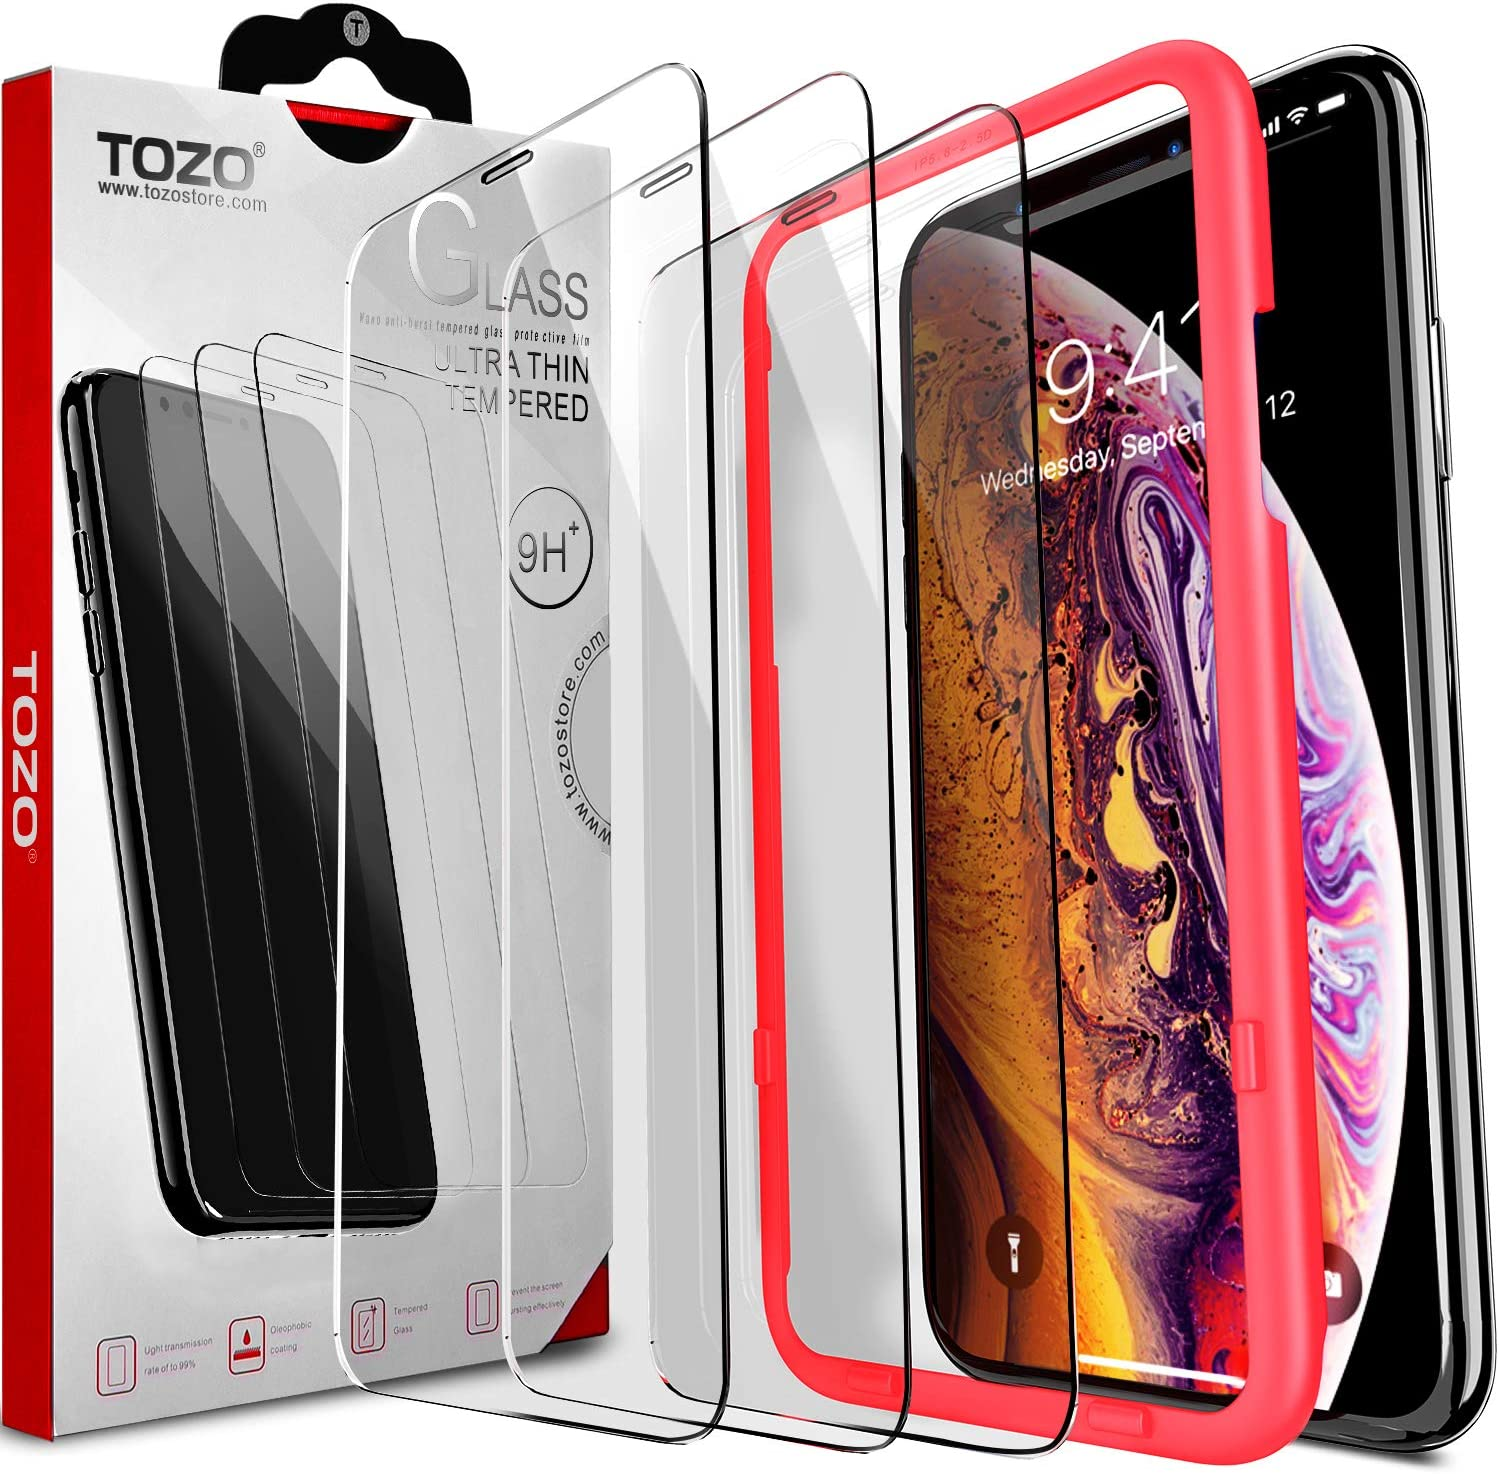 TOZO Compatible for iPhone 11 Pro/XS/X Screen Protector [3-Pack] Premium Tempered Glass [0.26mm] 9H Hardness 2.5D Film Super Easy Apply for iPhone 11 Pro/XS/X 5.8 Inch